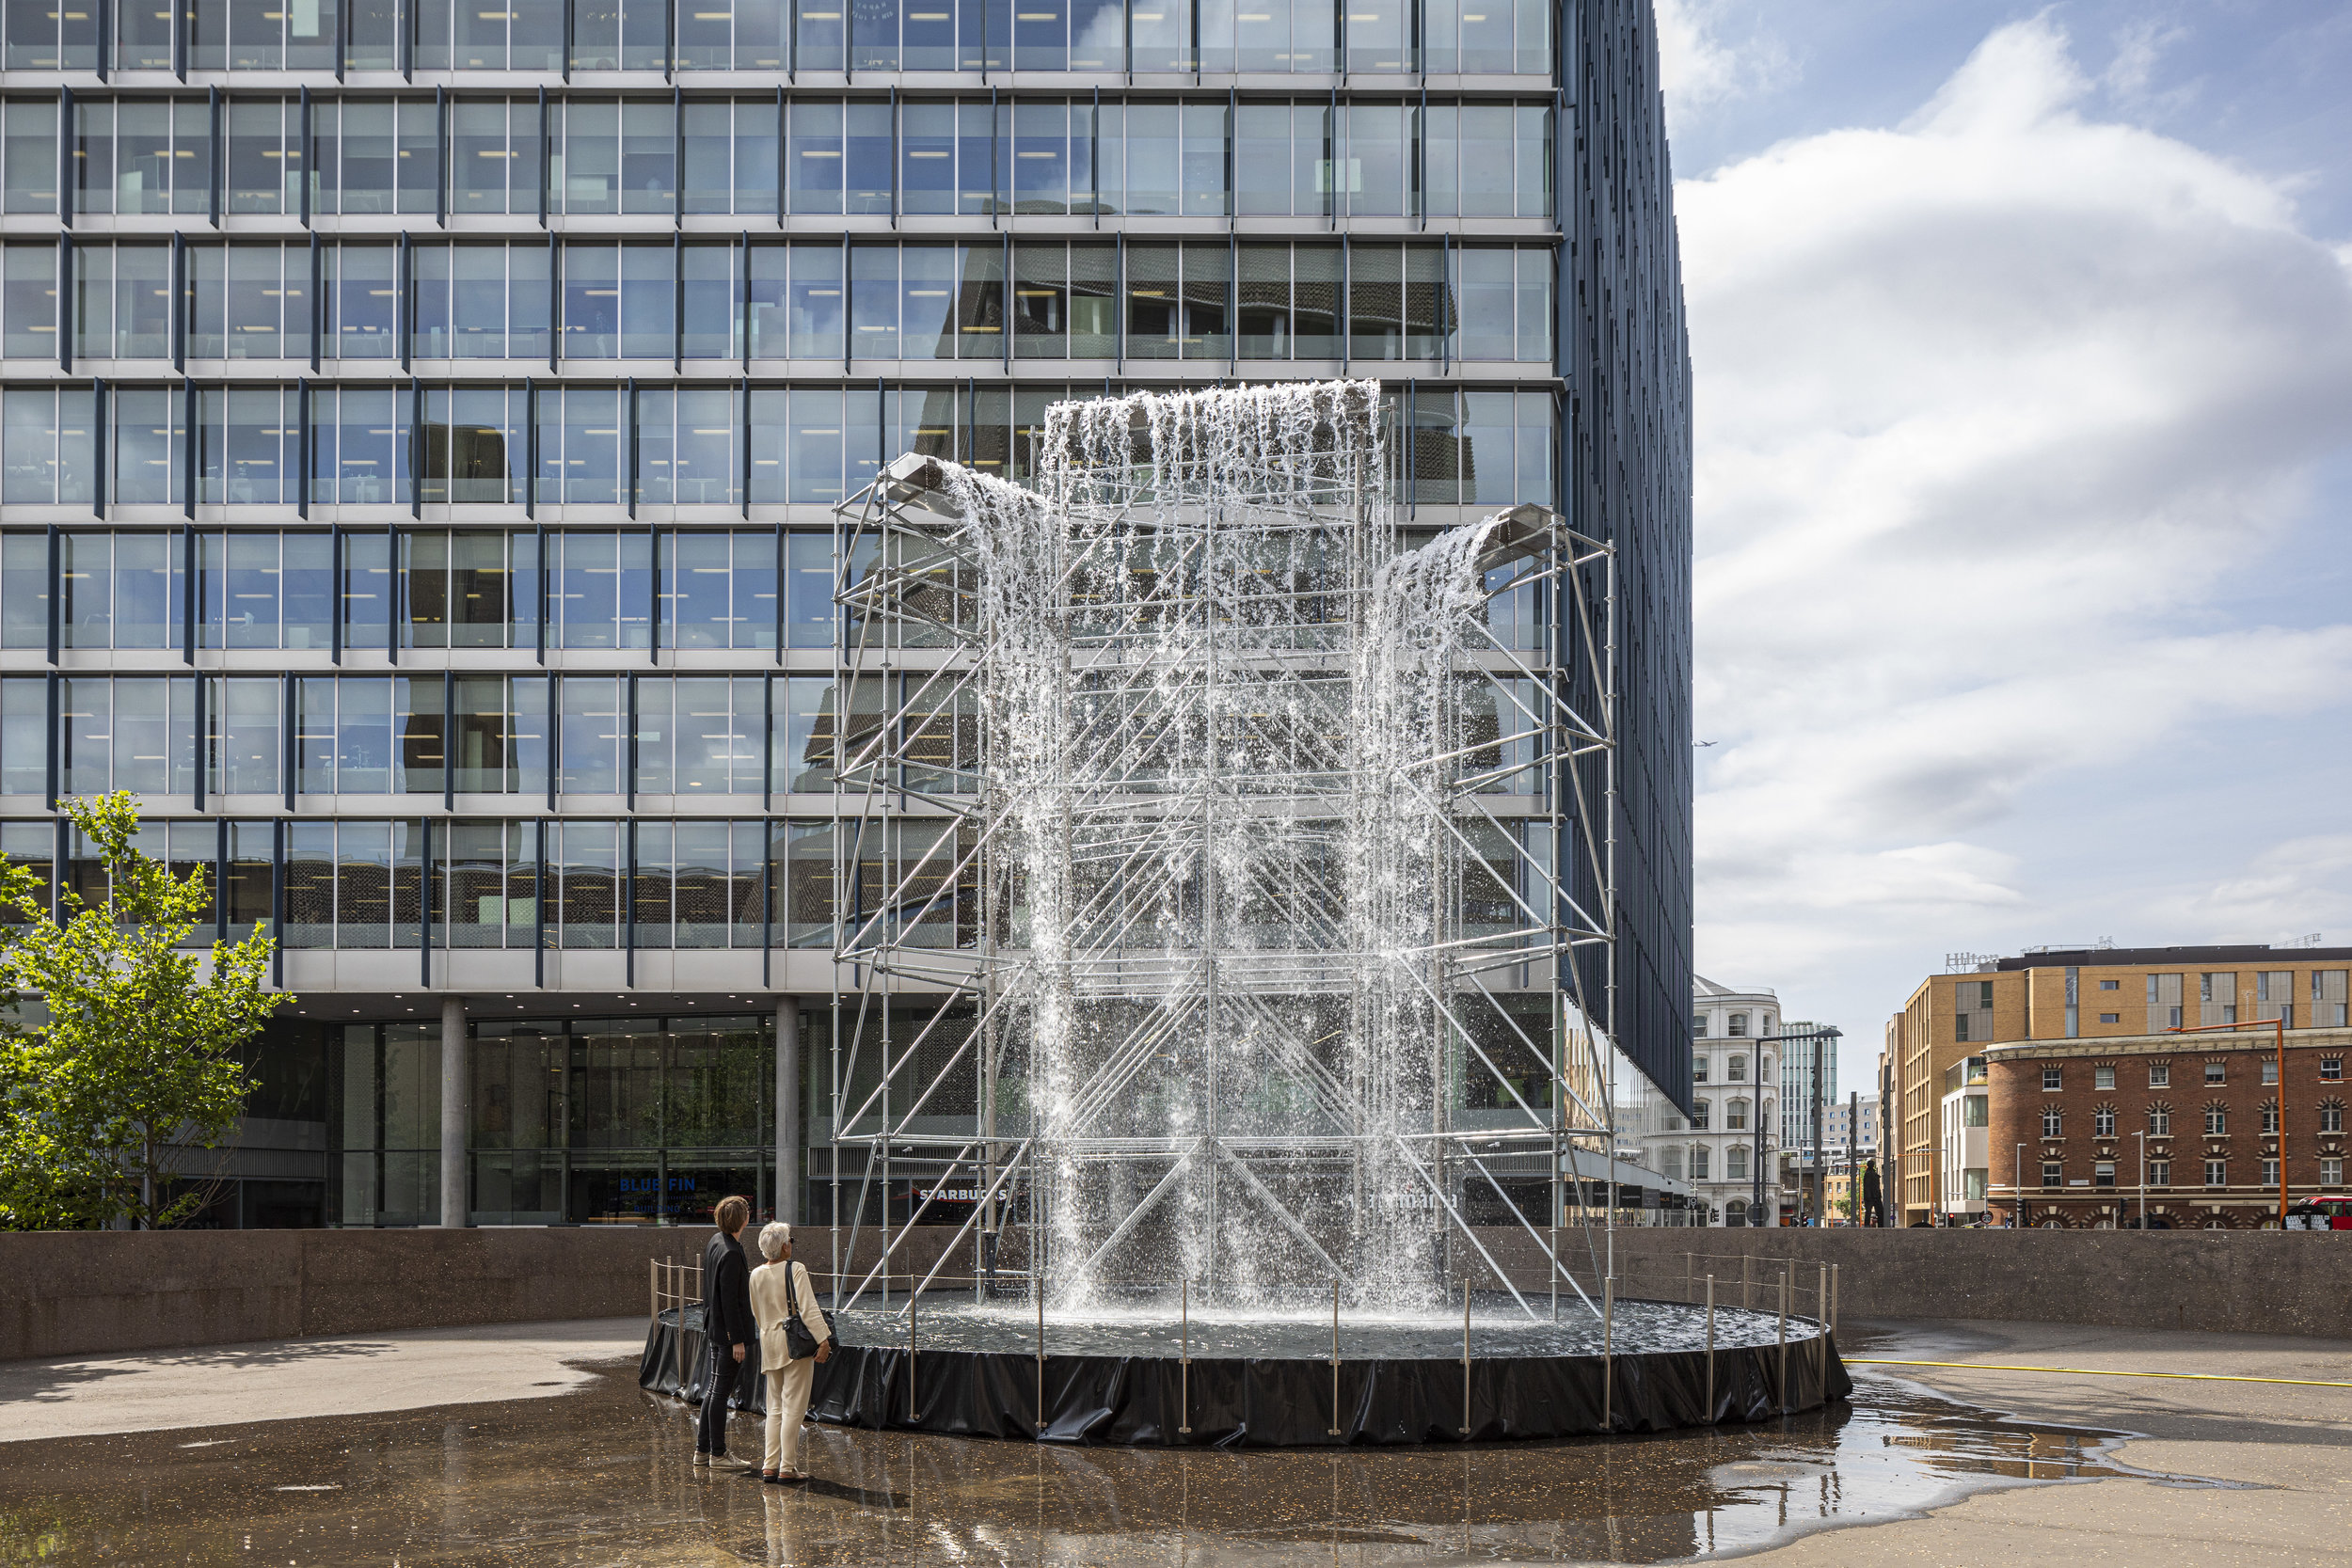 Olafur Eliasson (b.1967)   Waterfall   2019  Scaffolding, water, wood, plastic sheet, aluminium, pump, hose Height 11 metres, diameter 12 metres Courtesy the artist; neugerriemschneider, Berlin; Tanya Bonakdar Gallery, New York / Los Angeles Installation view: Tate Modern, London.  Photo: Anders Sune Berg  © 2019 Olafur Eliasson